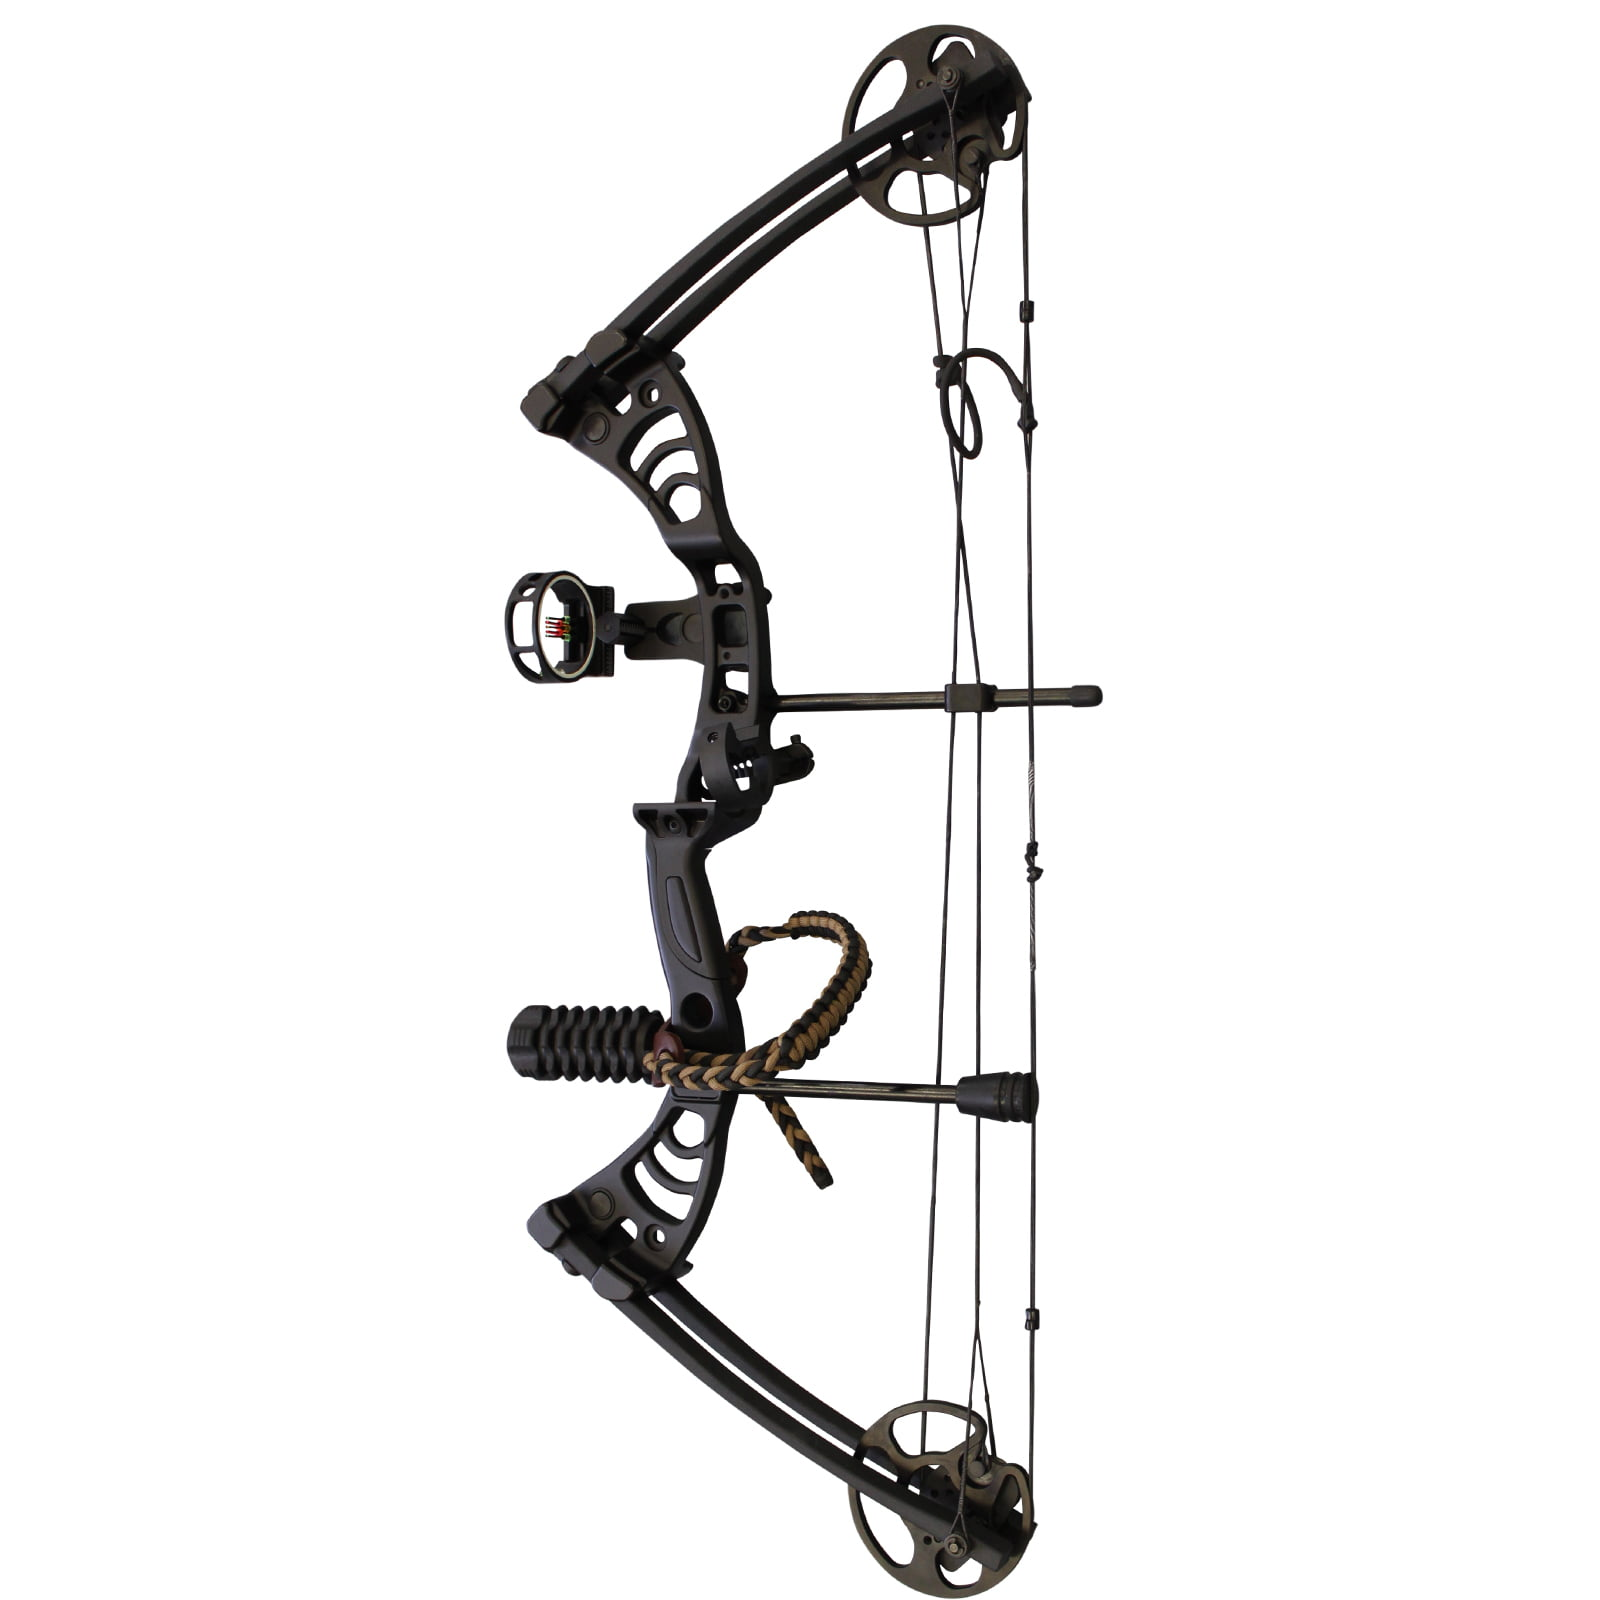 "SAS Scorpii 55 Lb 29"" Compound Bow Package by SAS"